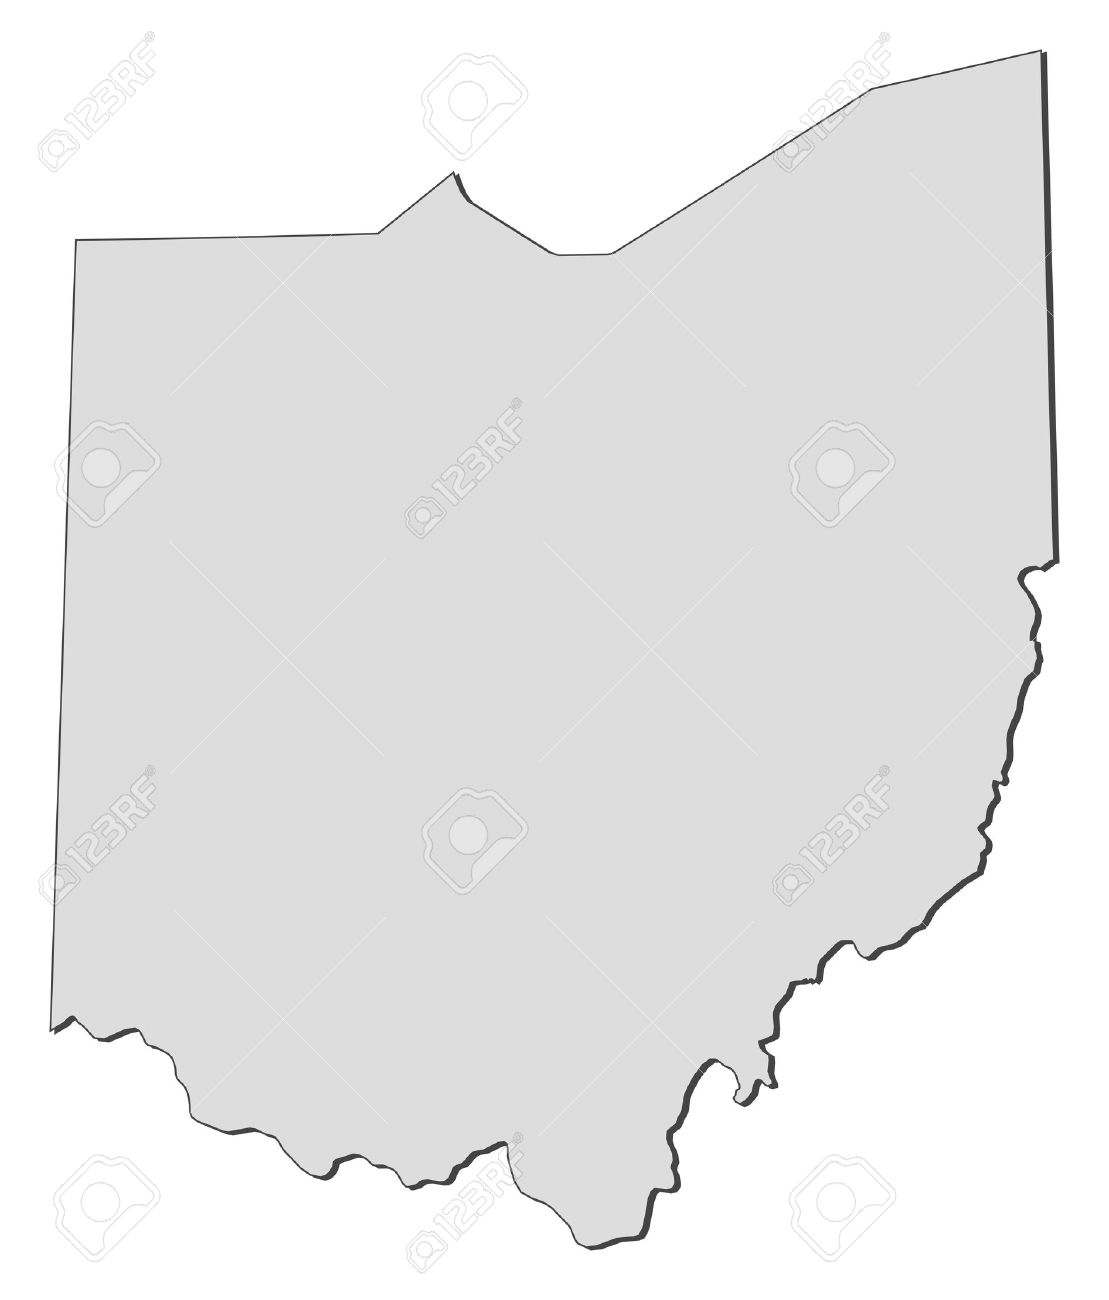 Map Of Ohio A State Of United States Royalty Free Cliparts Map Of Ohio Outline